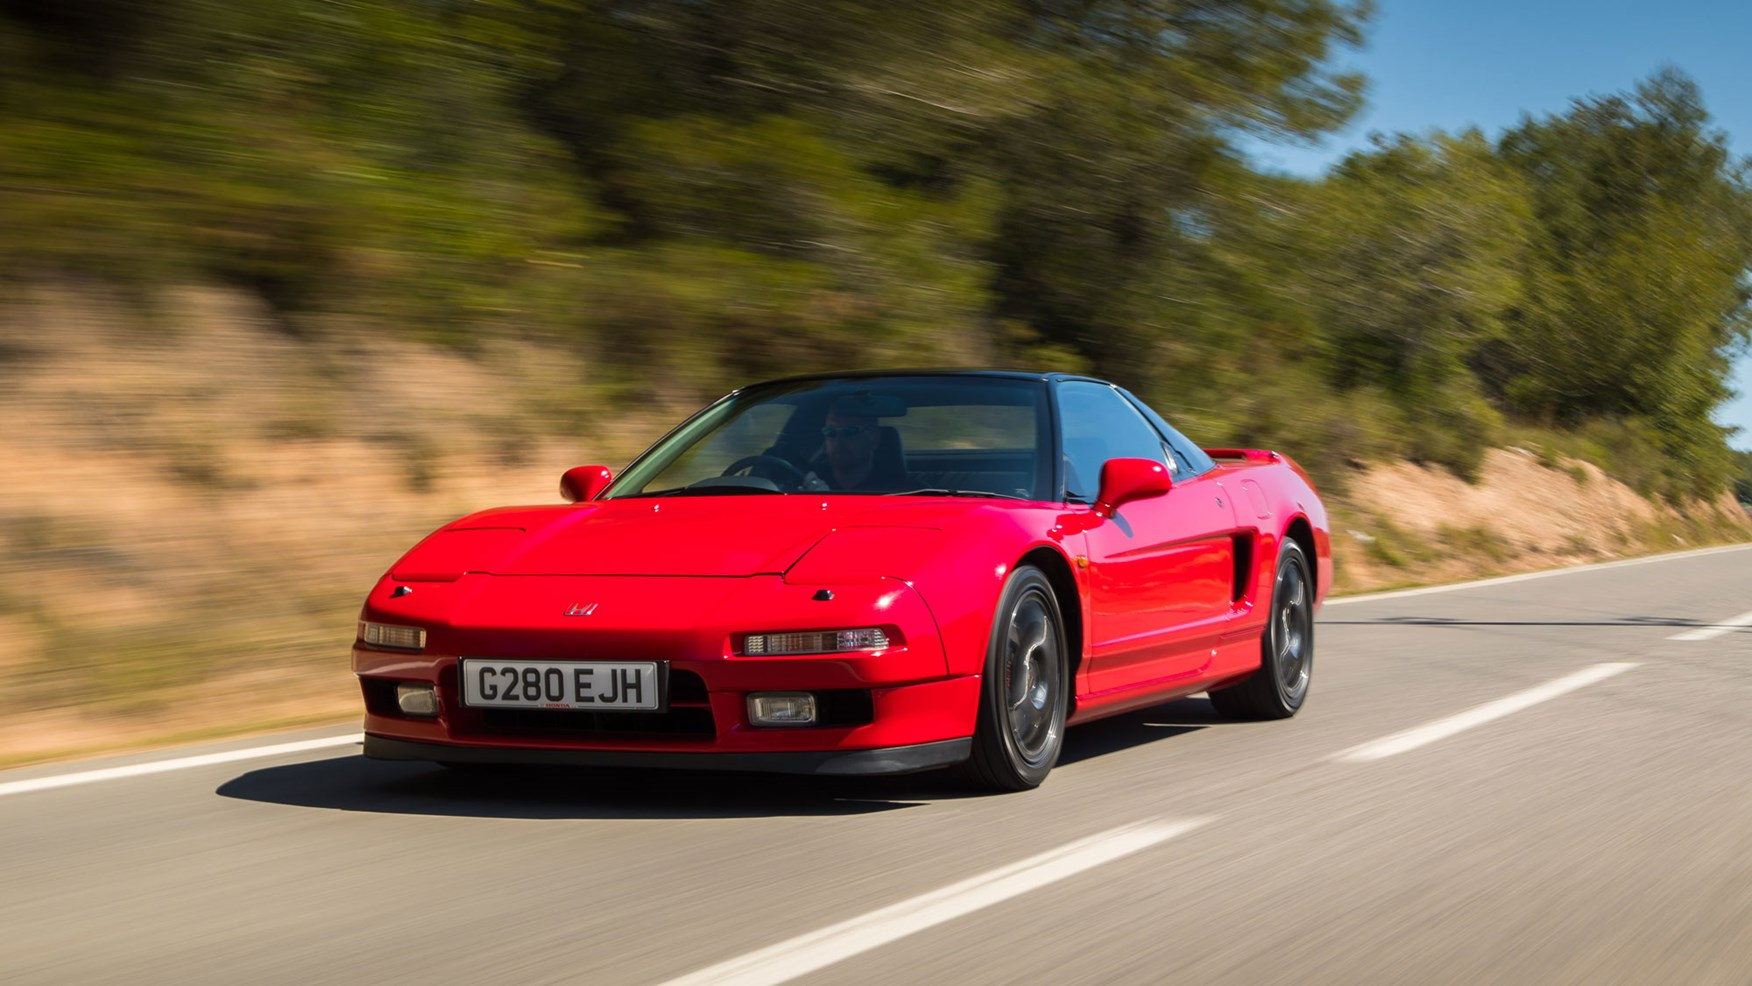 Auto Lease Deals >> Driving the classics: Honda NSX (1988) review | CAR Magazine